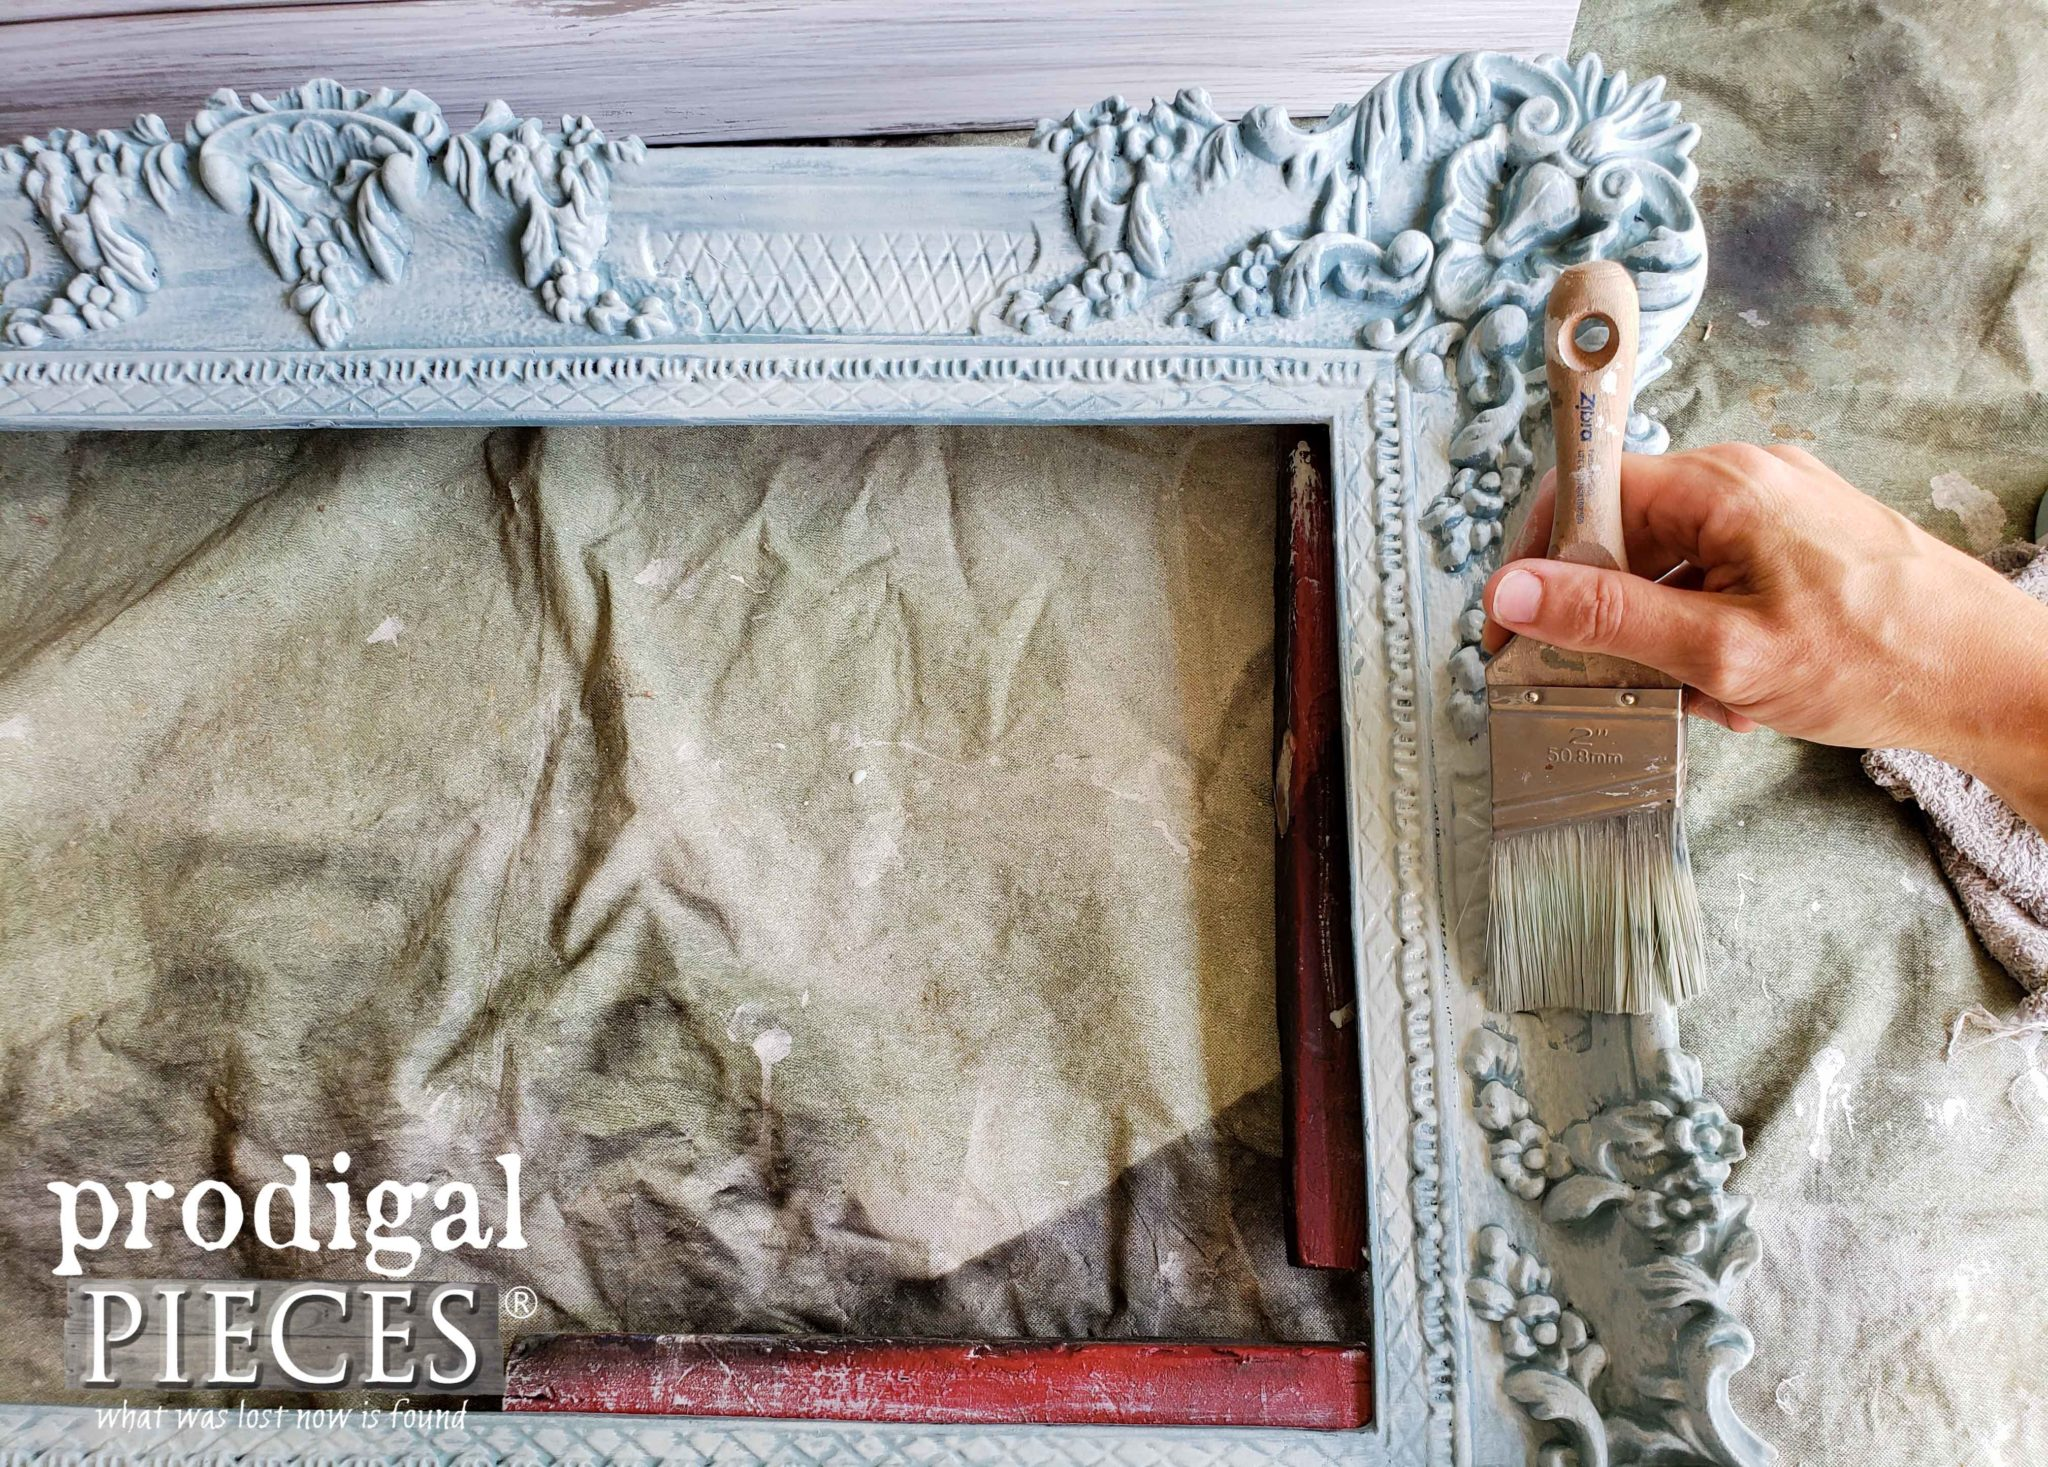 Dry Brushing Ornate Frame with DecoArt Vintage and Zibra Stubby Brush | available at Prodigal Pieces | prodigalpieces.com #prodigalpieces